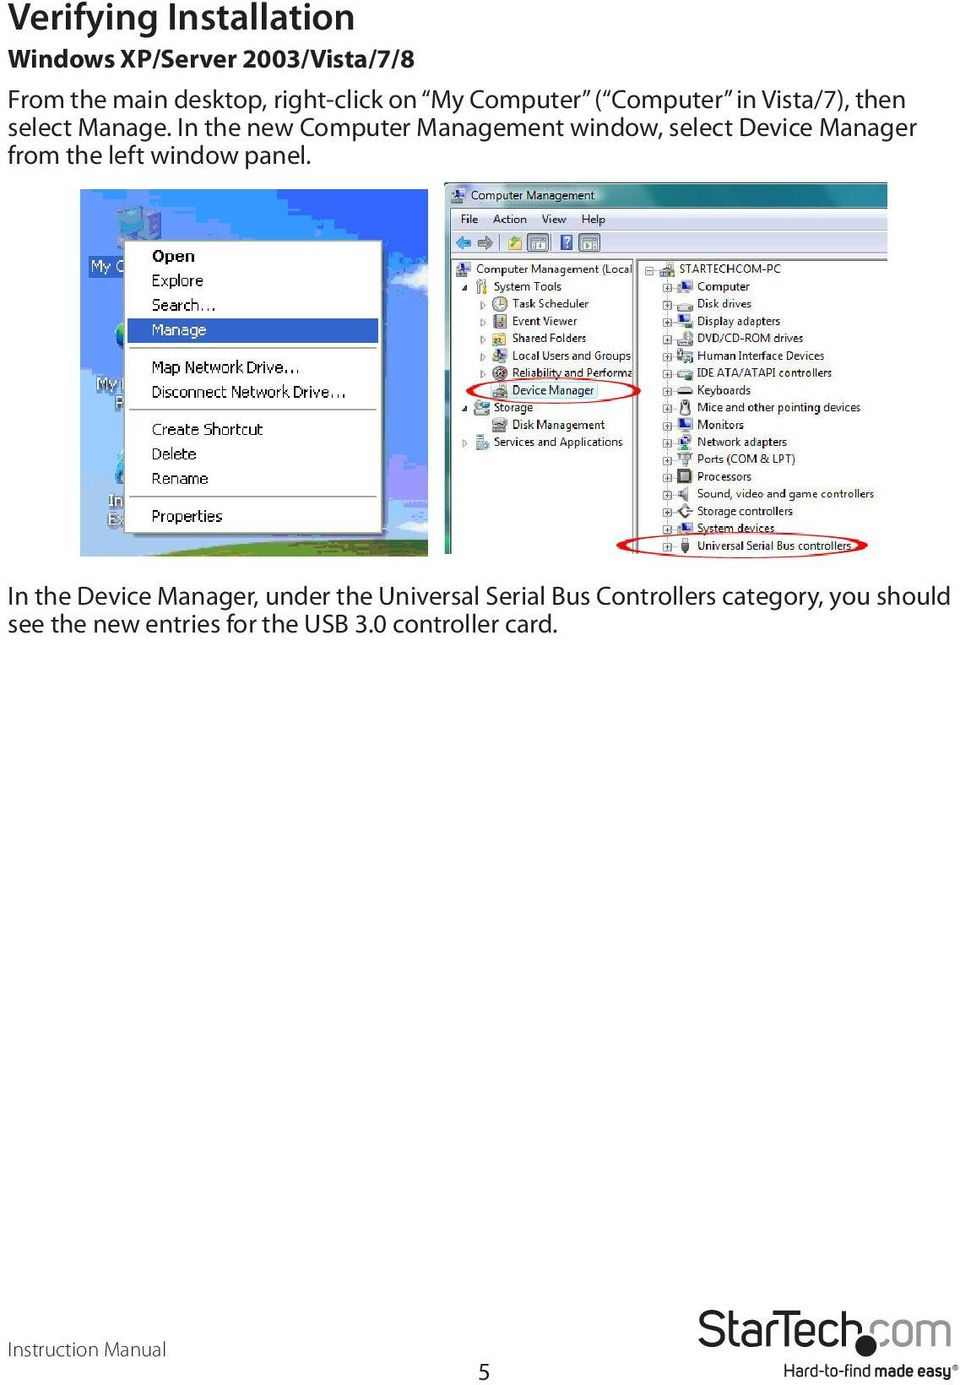 In the new Computer Management window, select Device Manager from the left window panel.